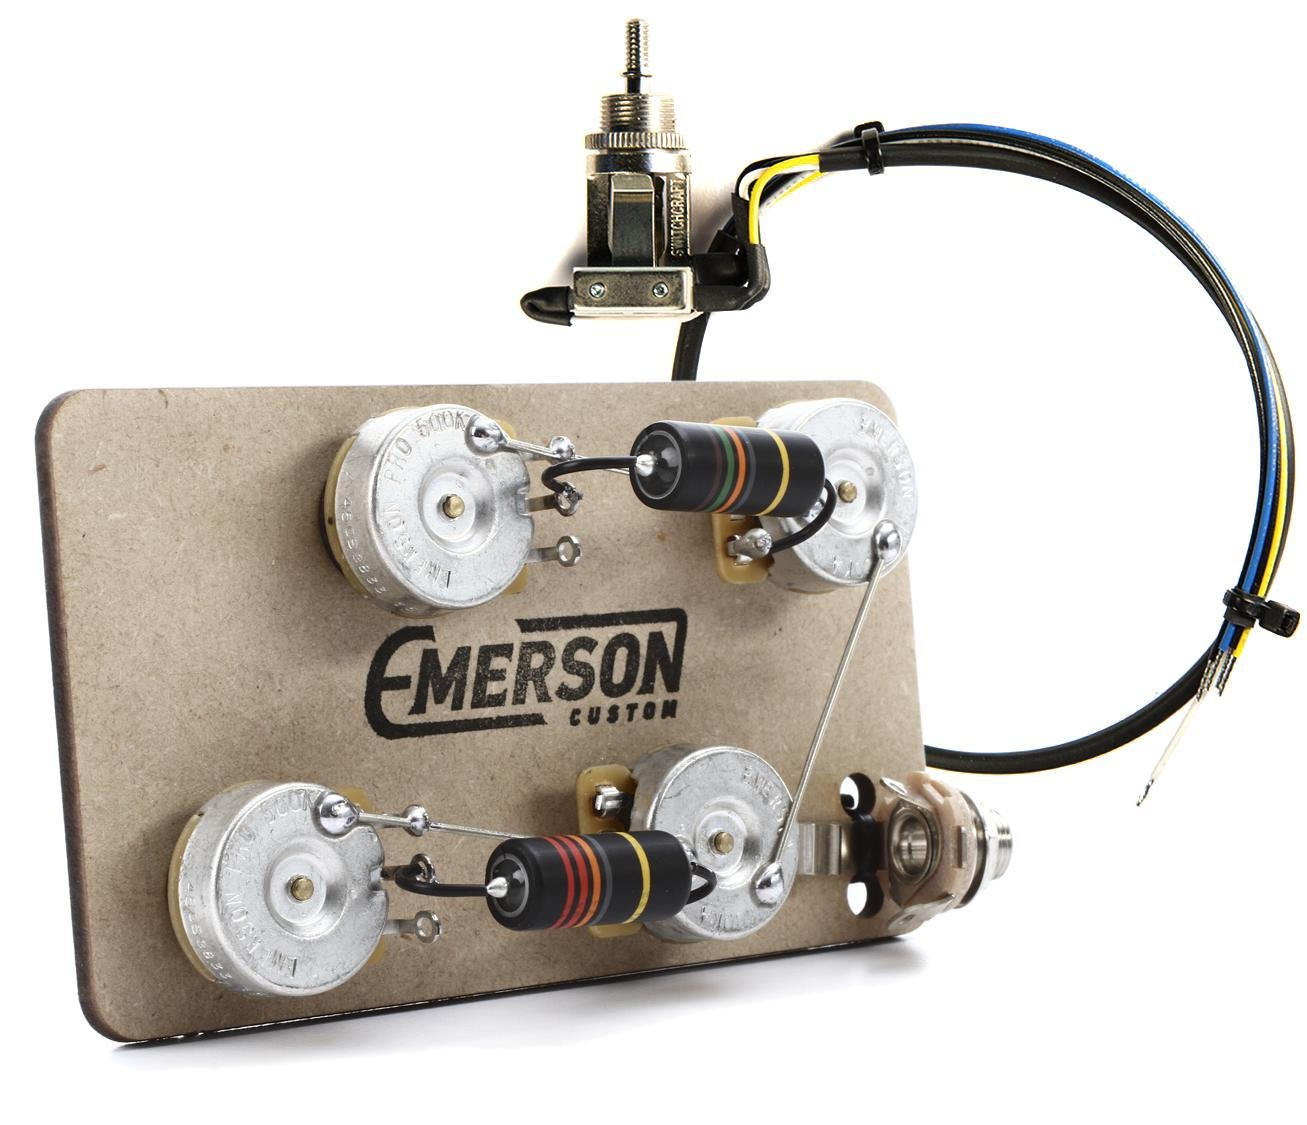 hight resolution of emerson custom prewired kit for les paul guitars long shaft with 3 way